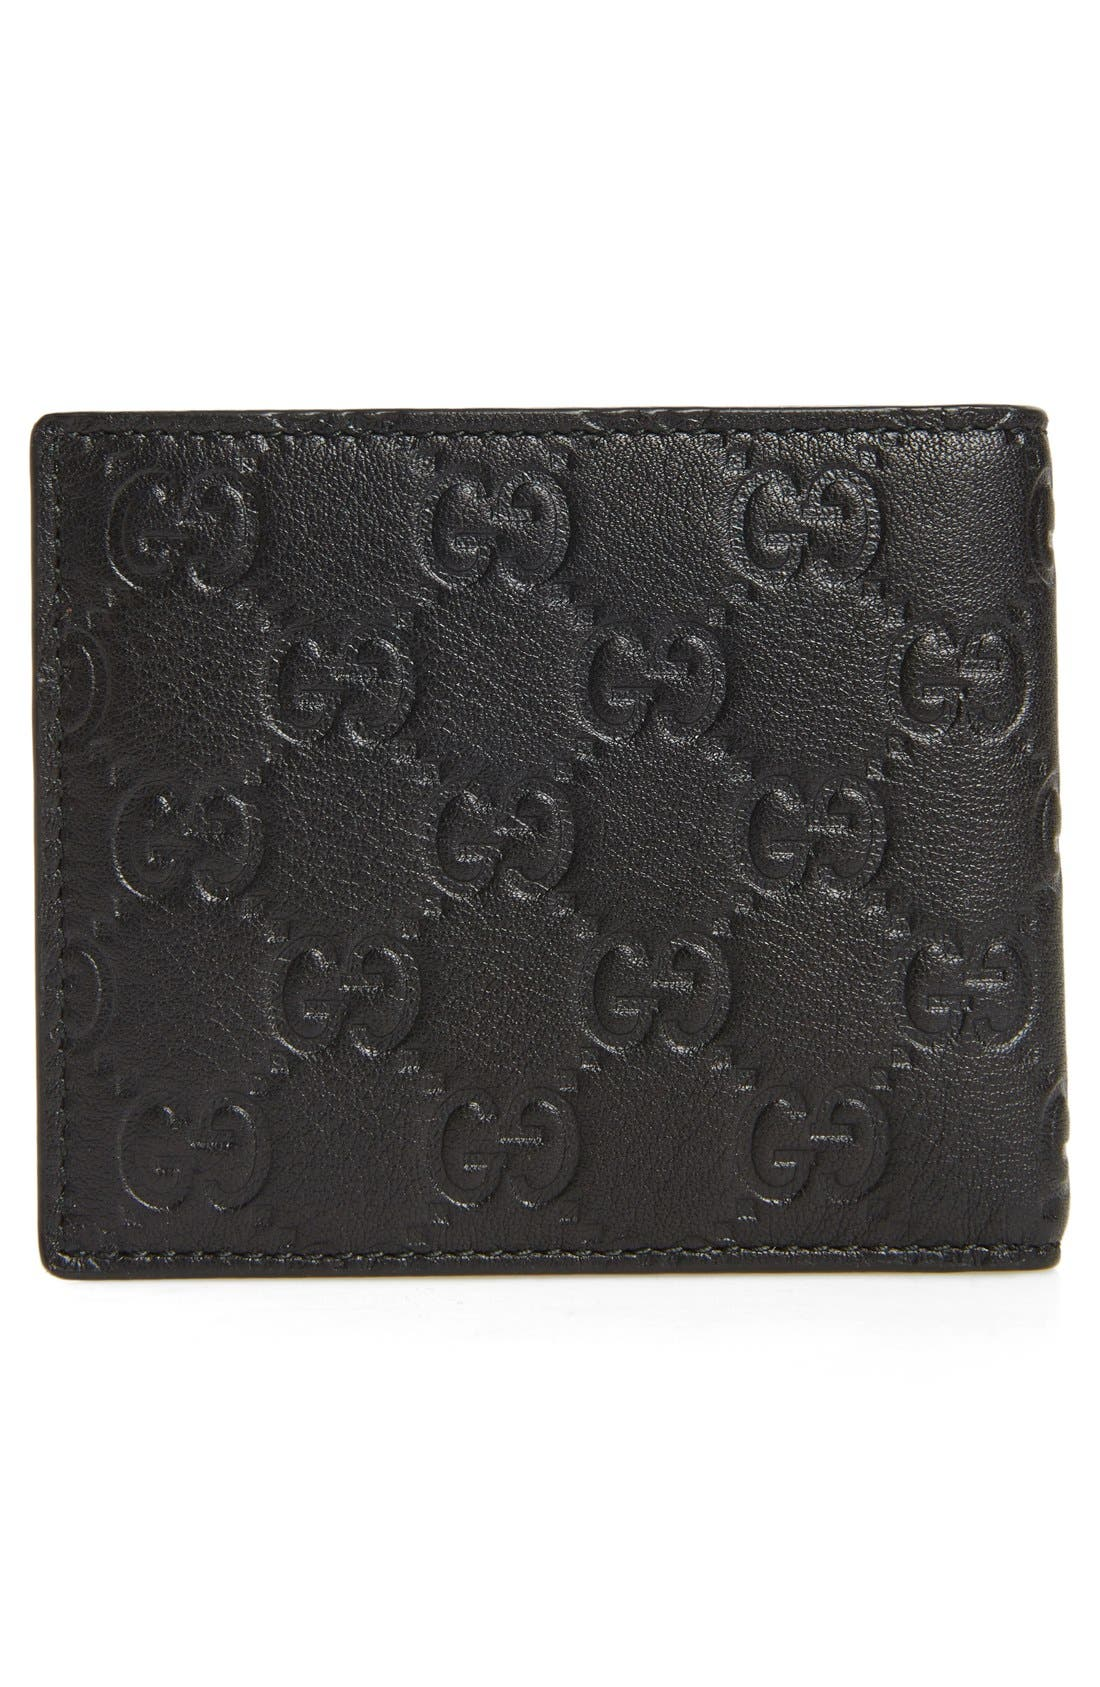 Logo Embossed Calfskin Leather Wallet,                             Alternate thumbnail 3, color,                             002